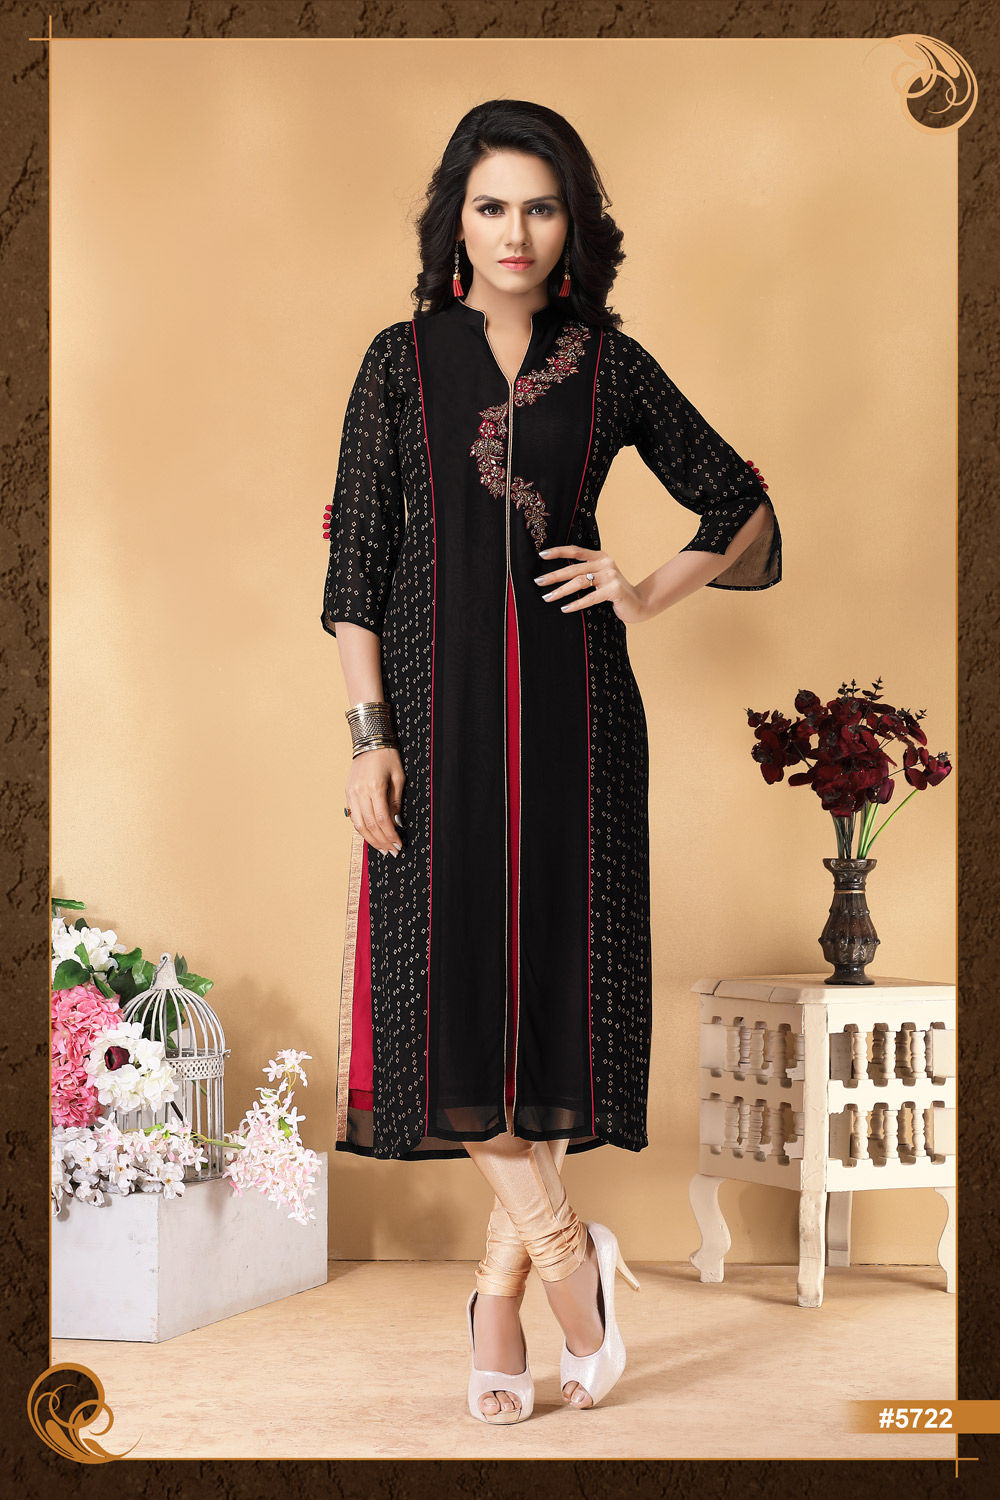 Trendiest Designs And Styles In Ethnic Wear For Every Occasion.